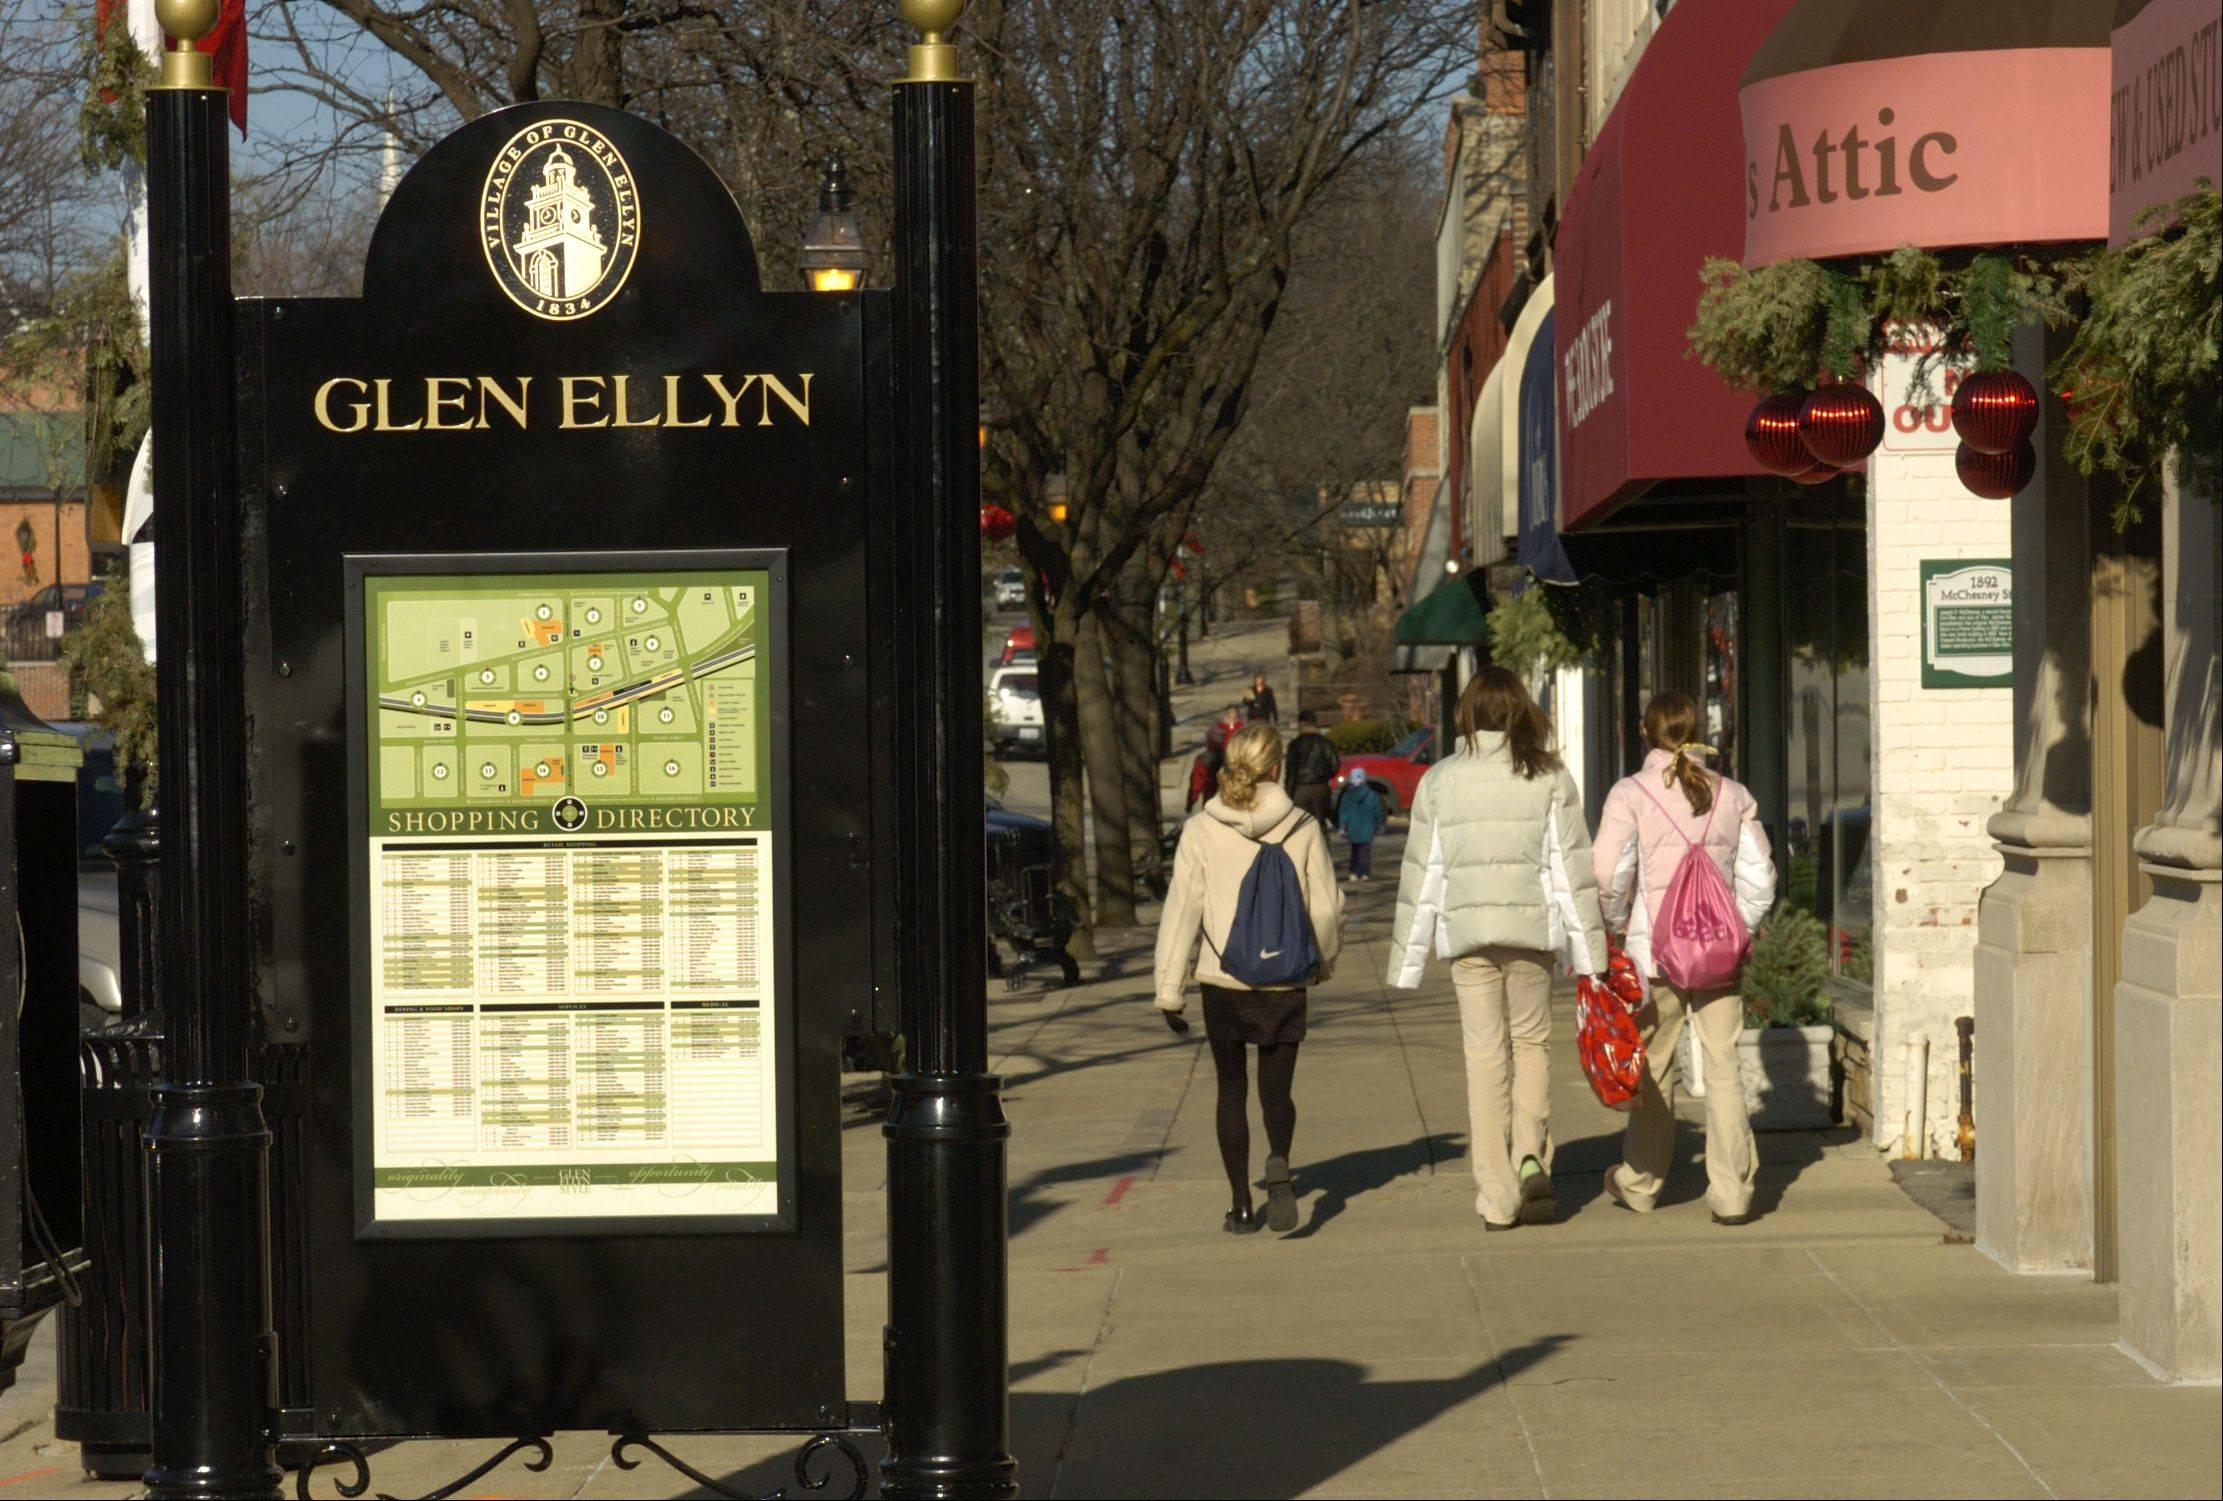 Glen Ellyn was ranked the 54th best place to live in America by Money Magazine.